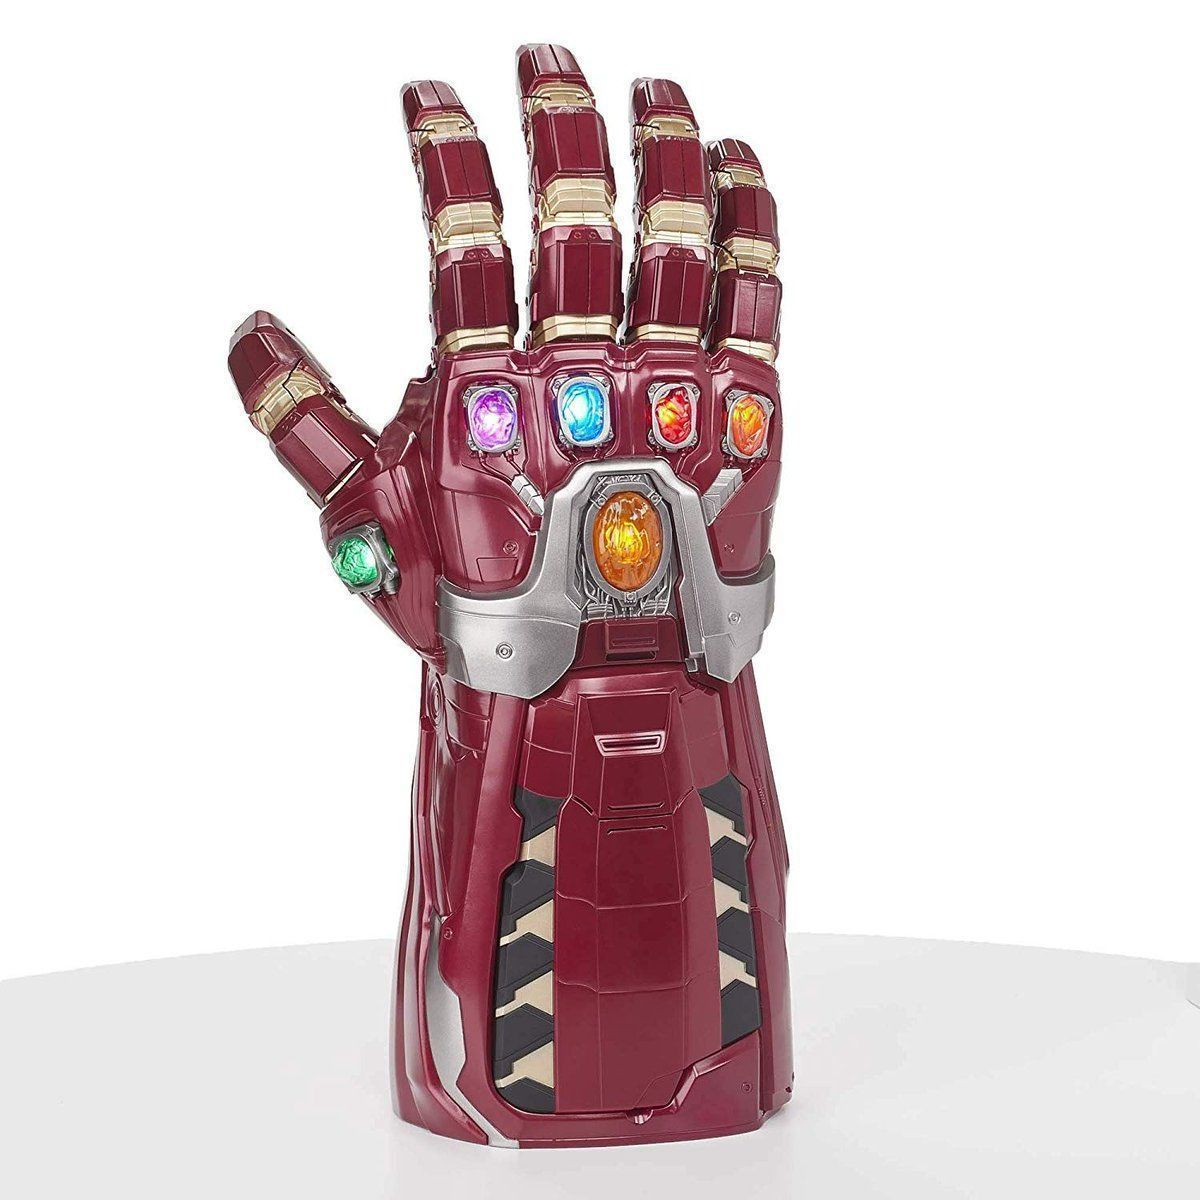 The Avengers Marvel Legends Nano Gauntlet is up for preorder! (not charged til it ships) (yes you can flip people off with this) amzn.to/2XaeiRf - The Infinity Gauntlet of this is selling for 2x retail- now sold out on their website!